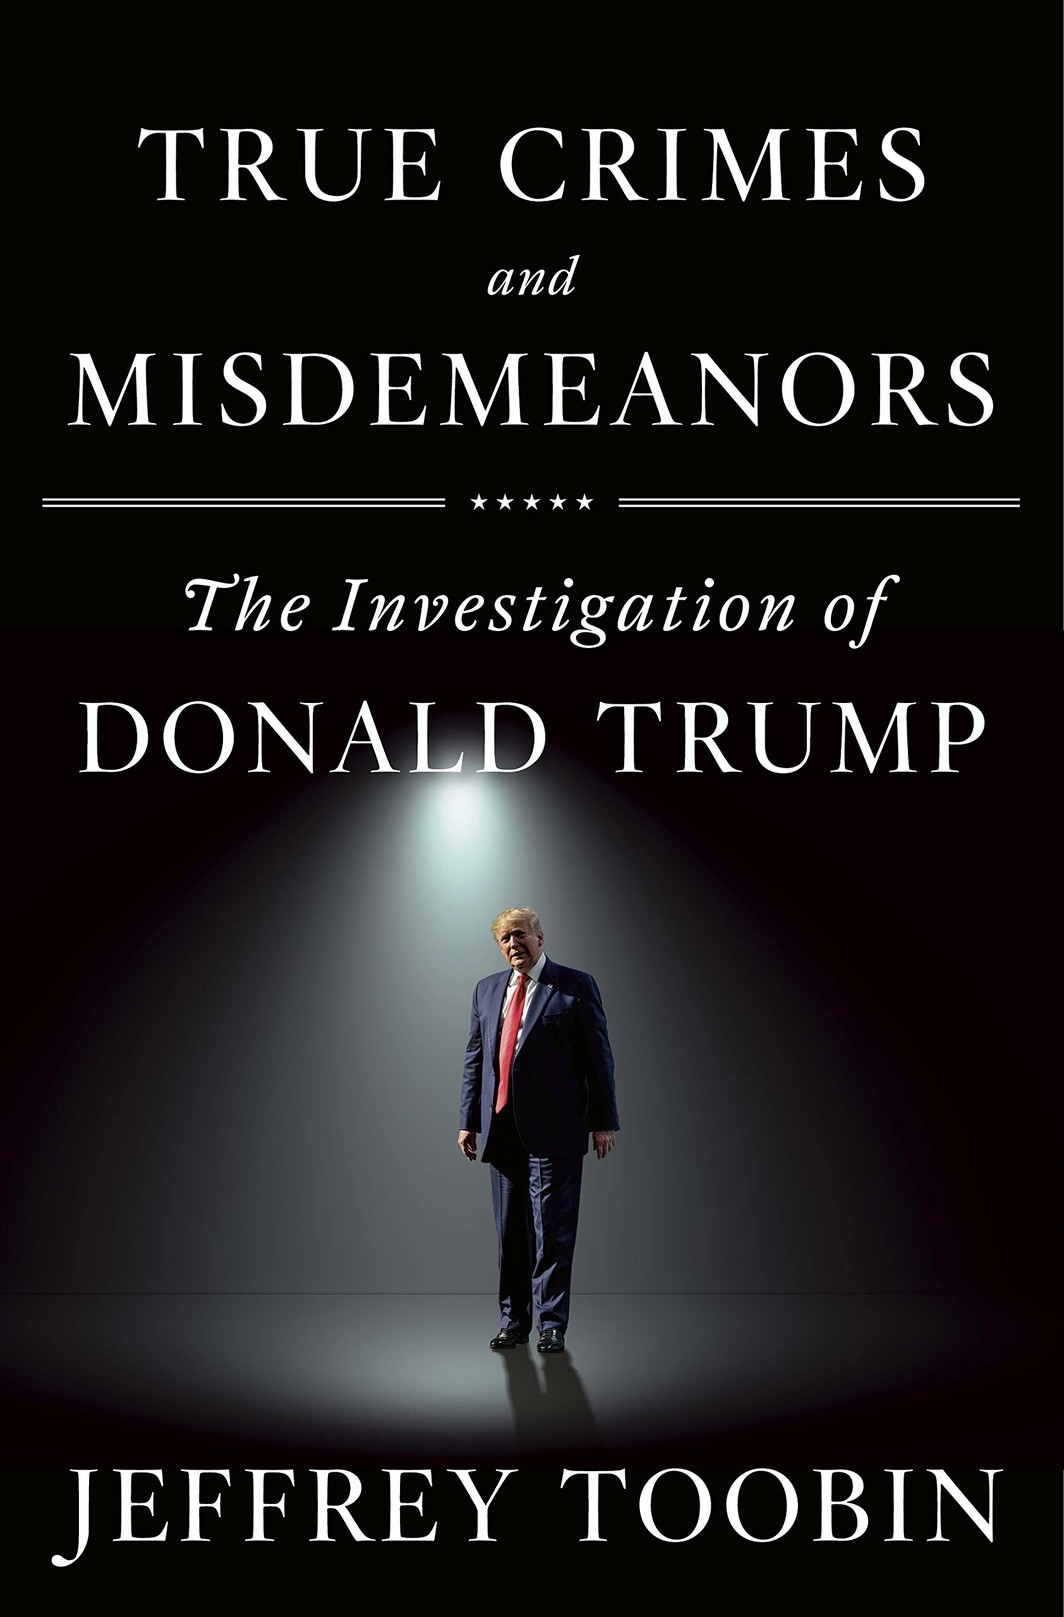 The cover of True Crimes and Misdemeanors: The Investigation of Donald Trump